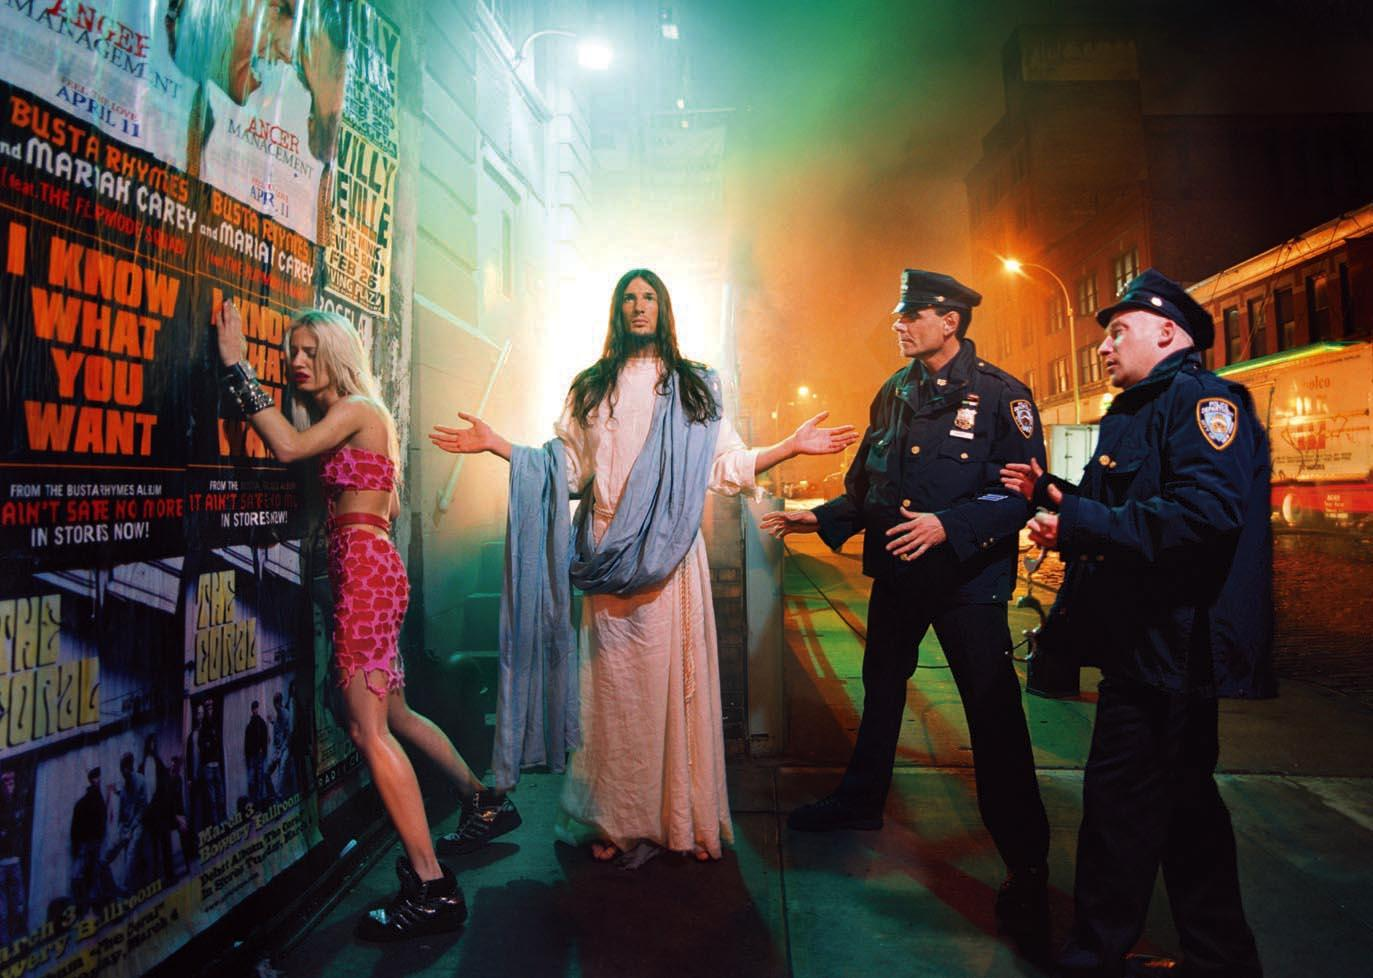 Jesus is My Home Boy by David LaChapelle - Guy Hepner | Art Gallery |  Prints for Sale | Chelsea, New York City